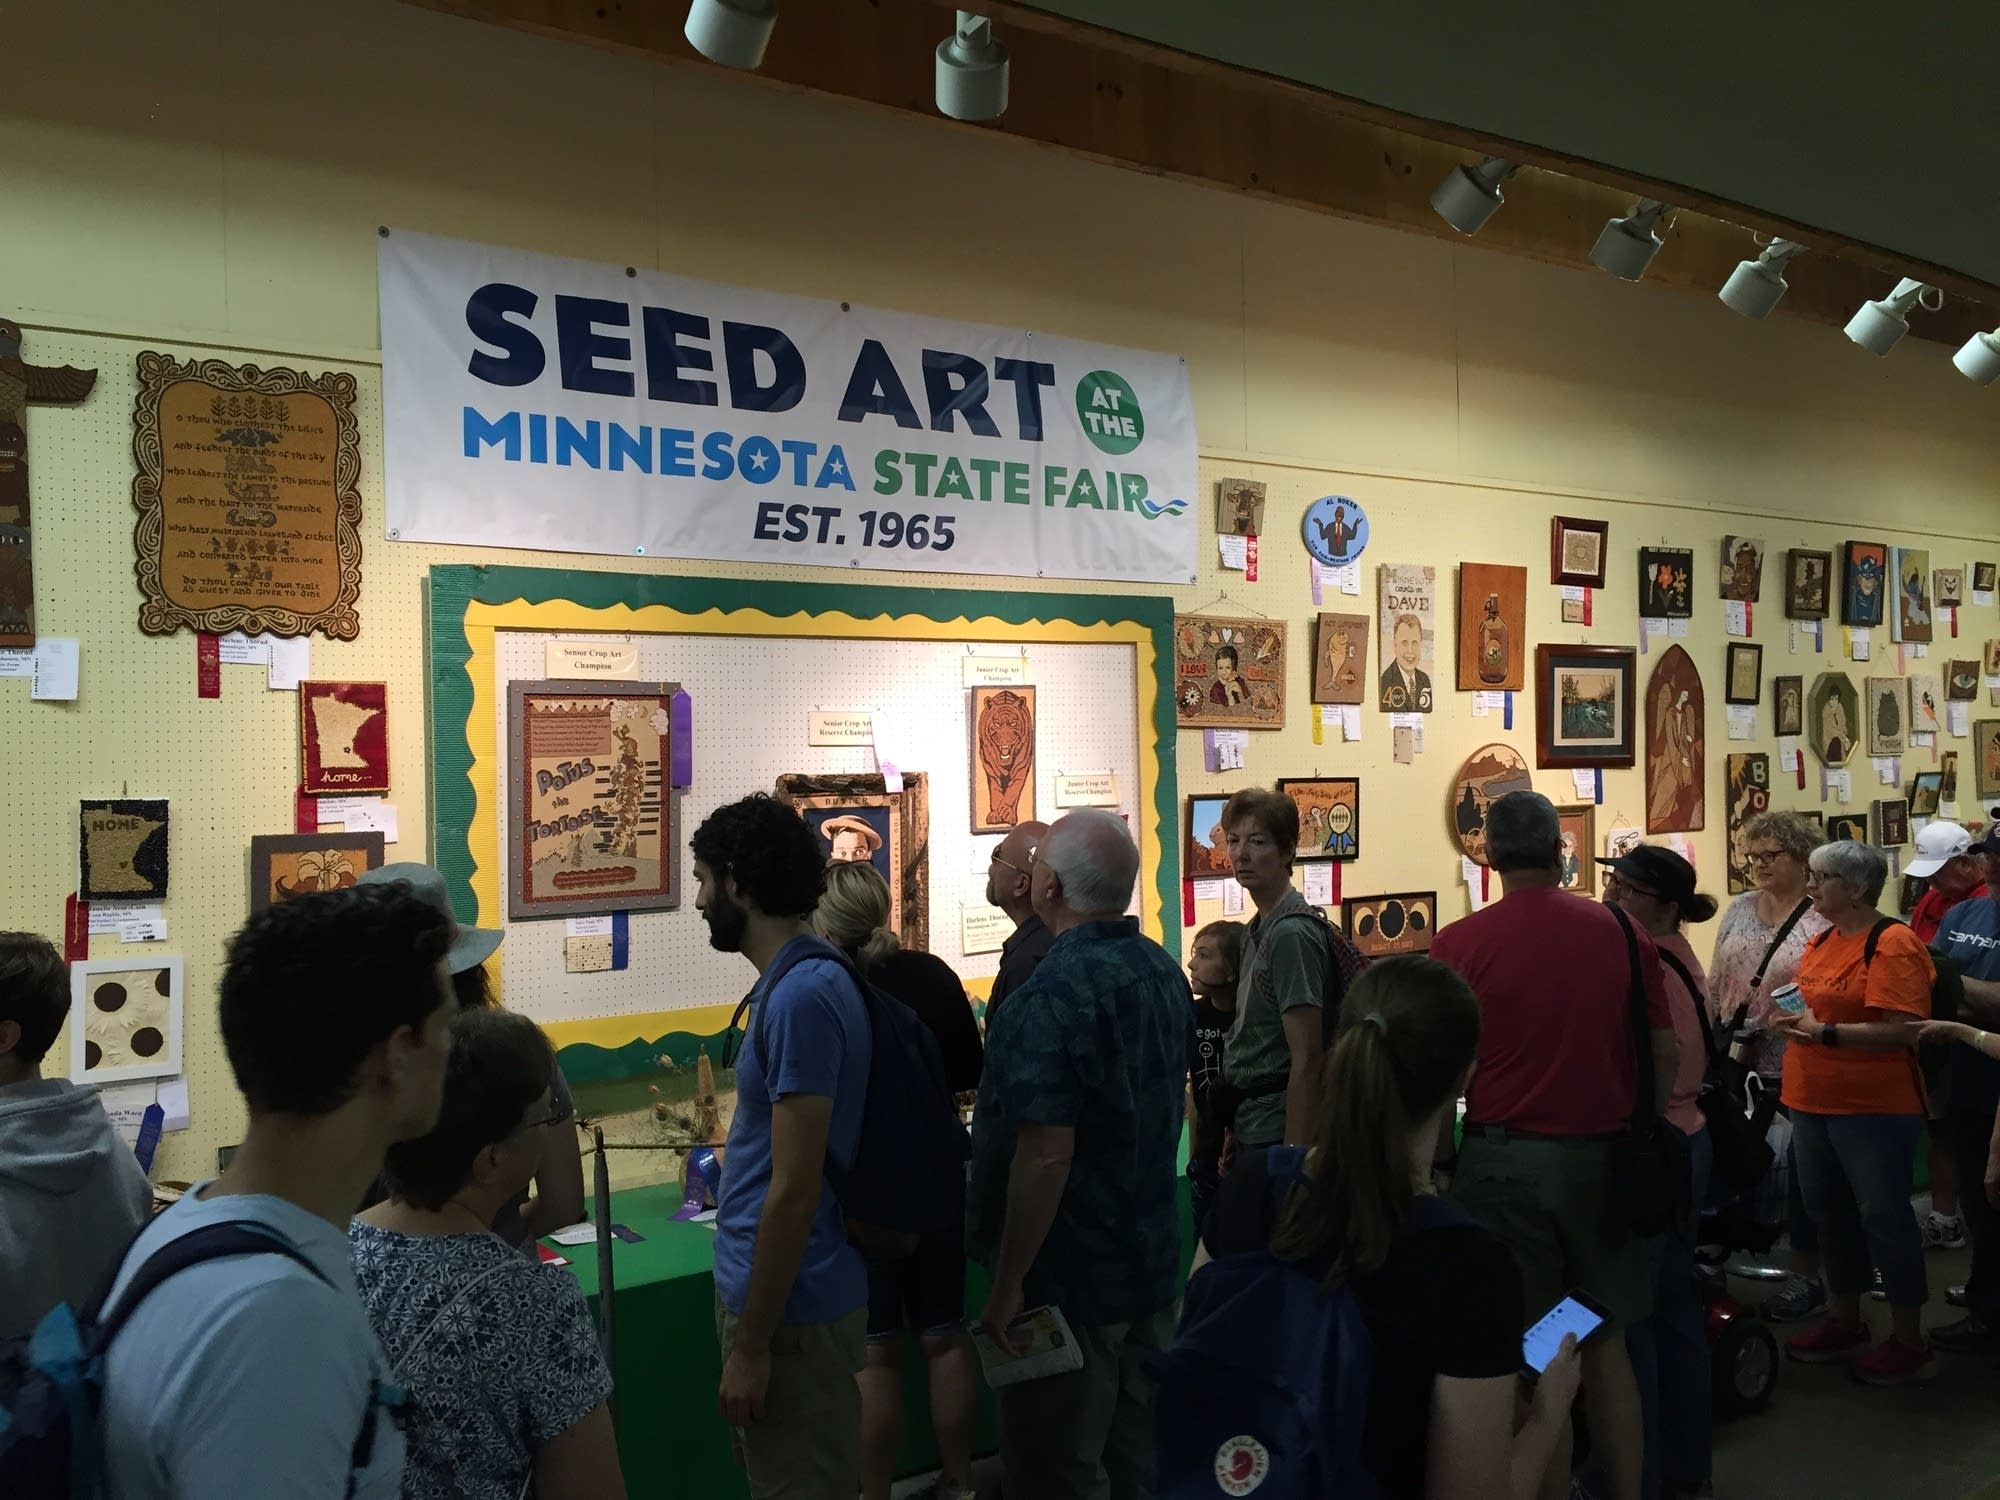 The 2017 Seed Art exhibit at the Minnesota State Fair